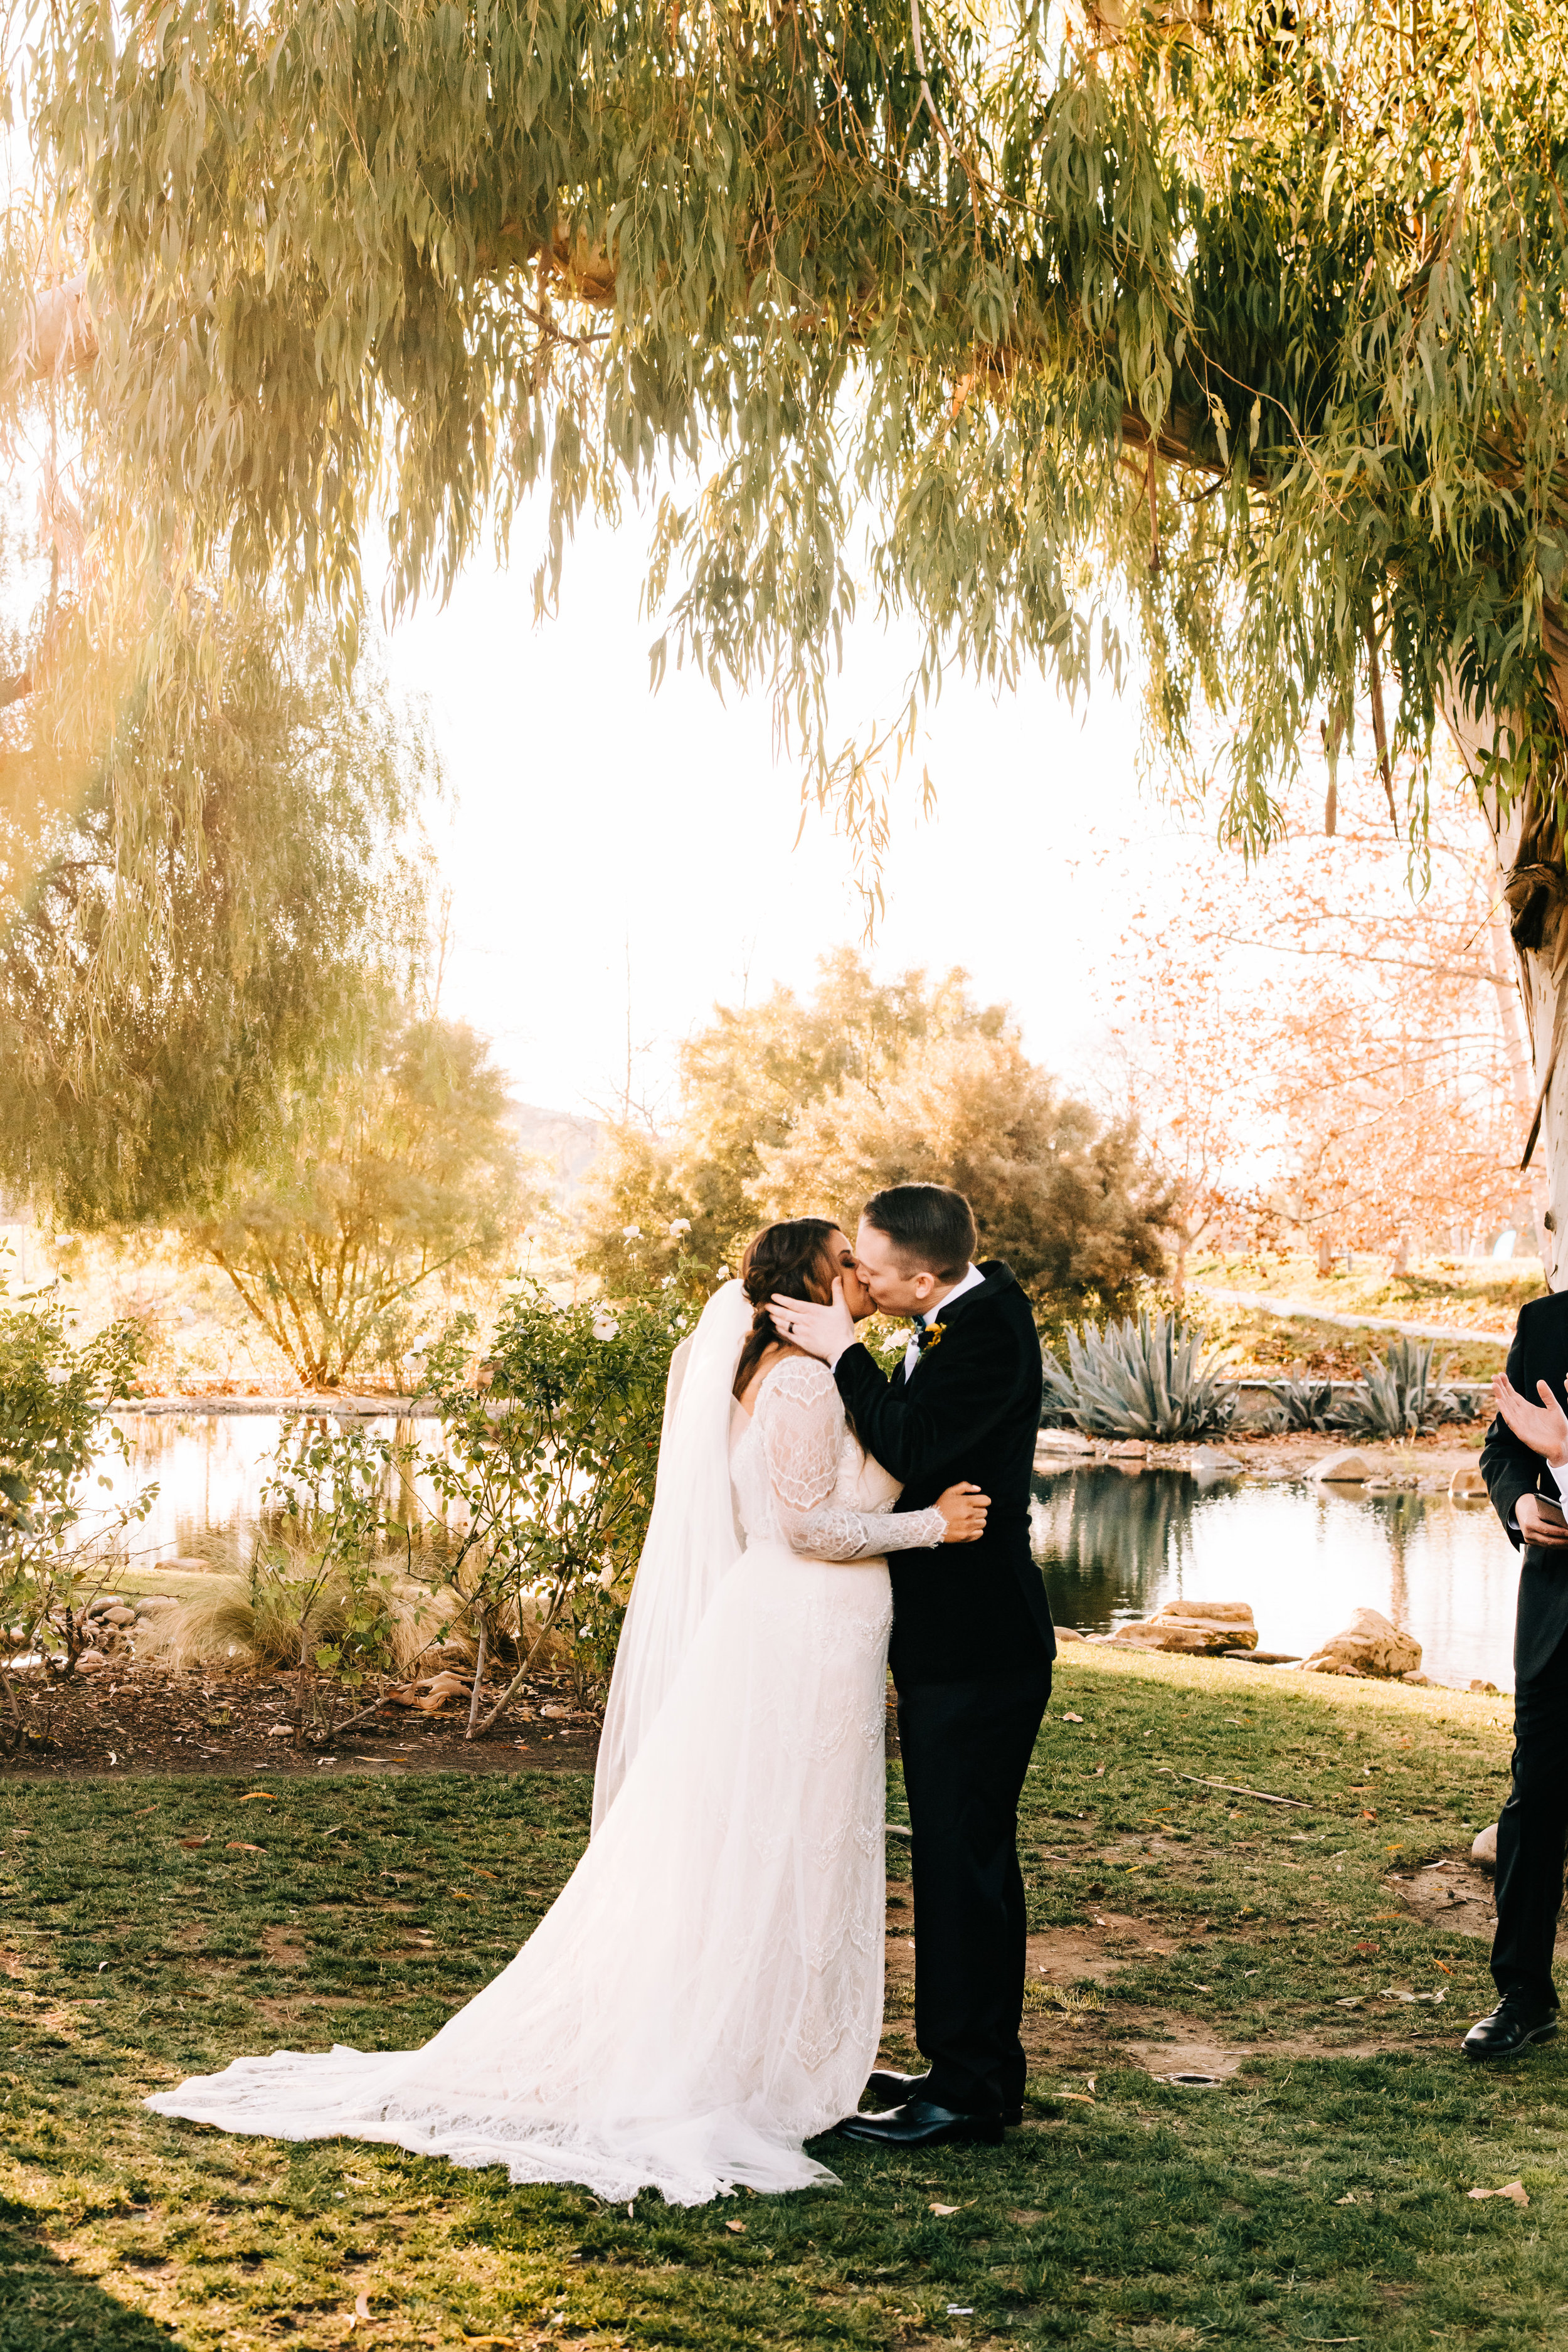 bay area nontraditional wedding photographer southern california boho wedding love light magic san francisco oakland northern california-605.jpg